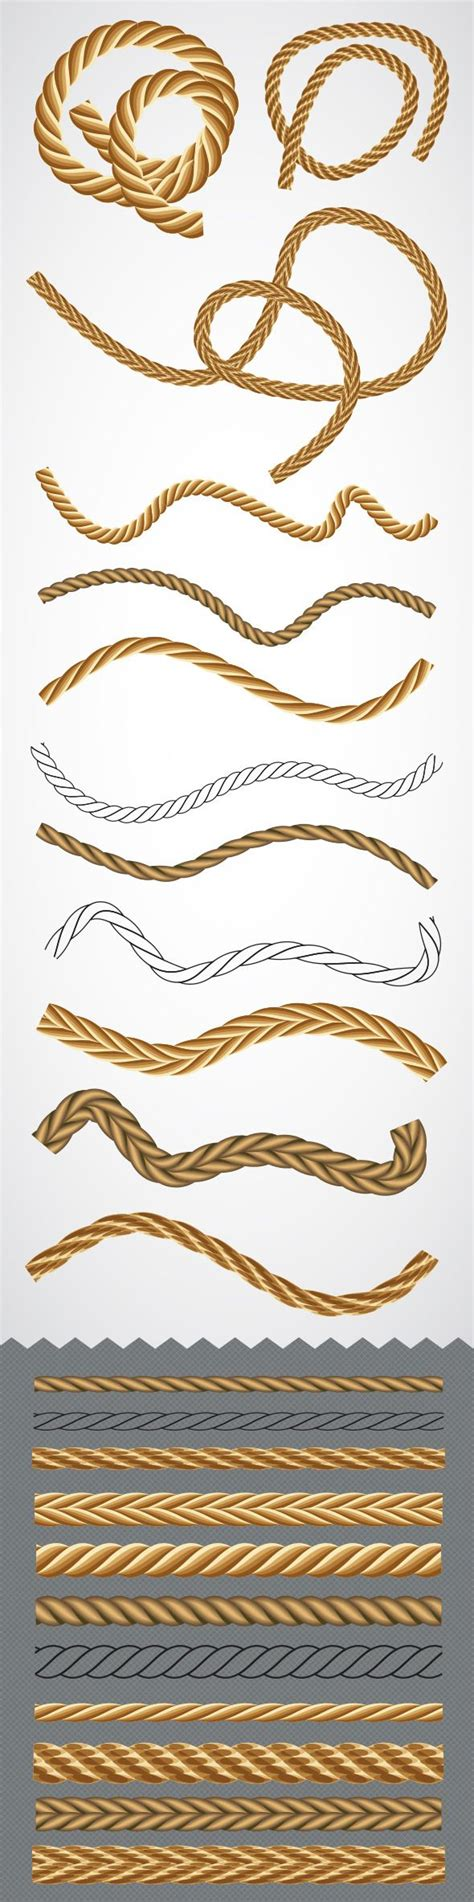 illustrator pattern rope 17 best images about cluedo on pinterest cruise ships